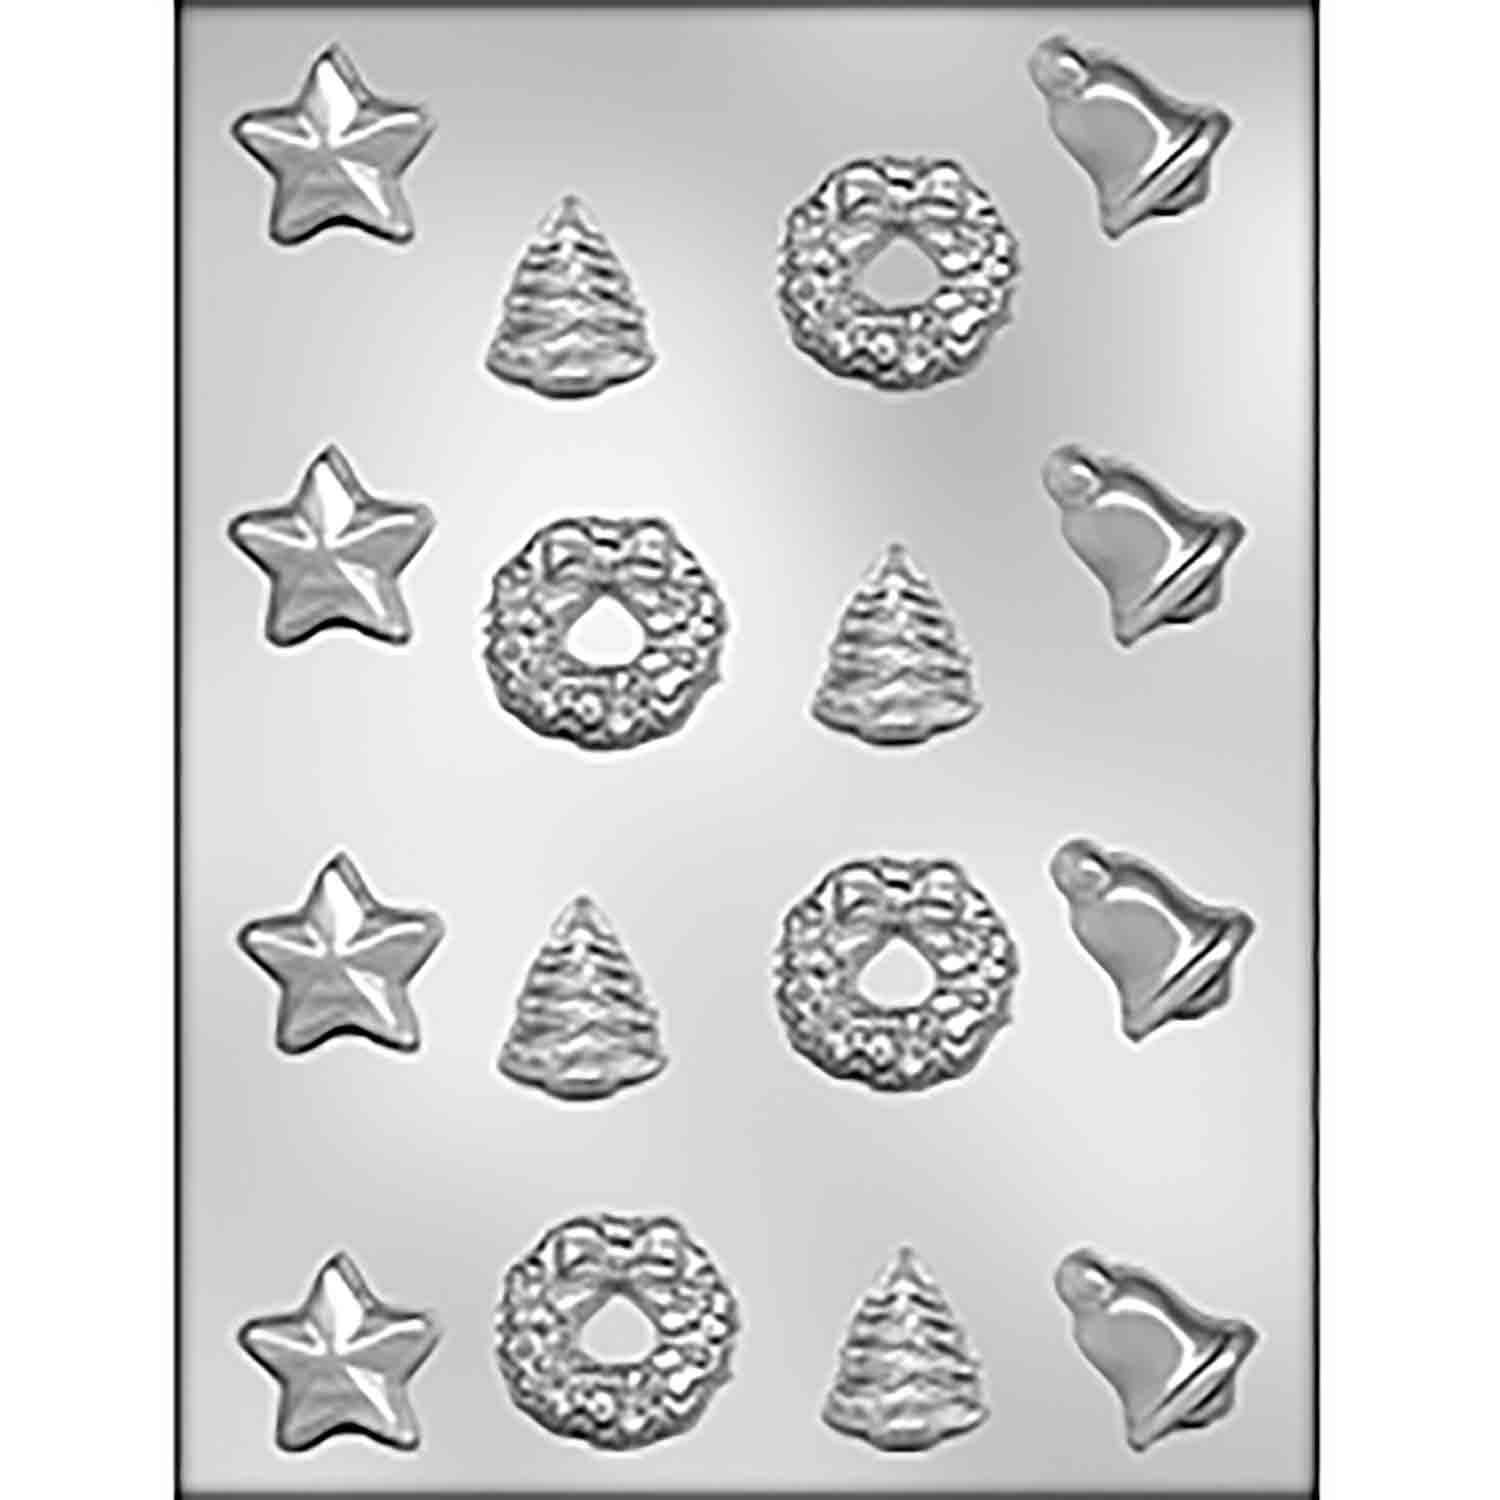 Star, Bell, Wreath & Tree Chocolate Candy Mold